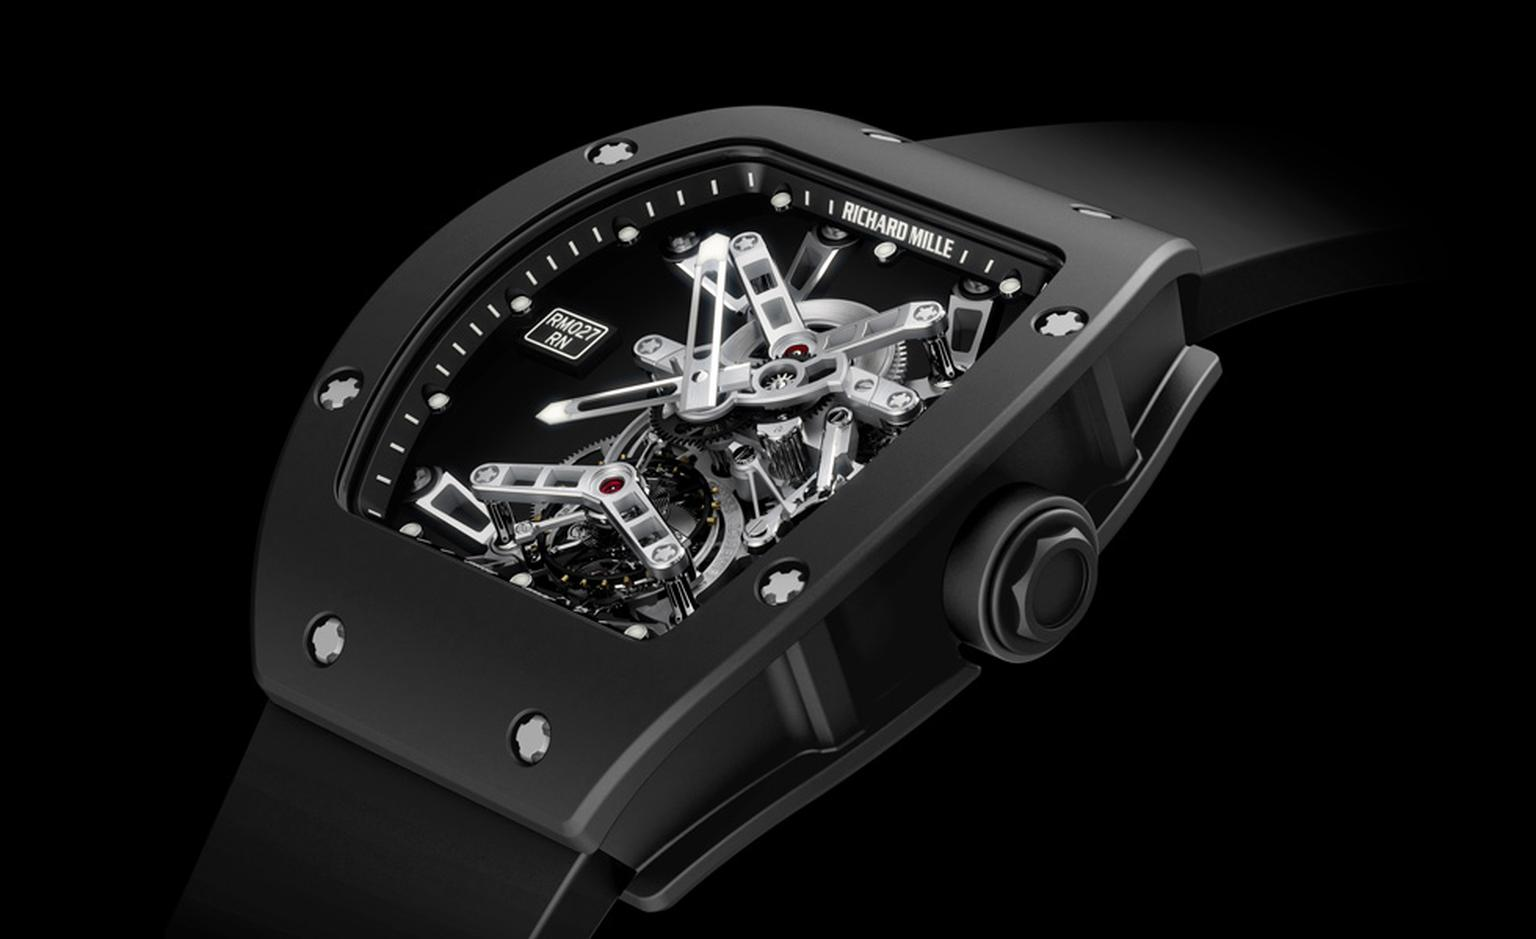 The Richard Mille RM 027 Tourbillon that Rafael Nadal is wearing on wrist when he plays tennis, including the Wimbledon 2011 final against Novak Djokovic.